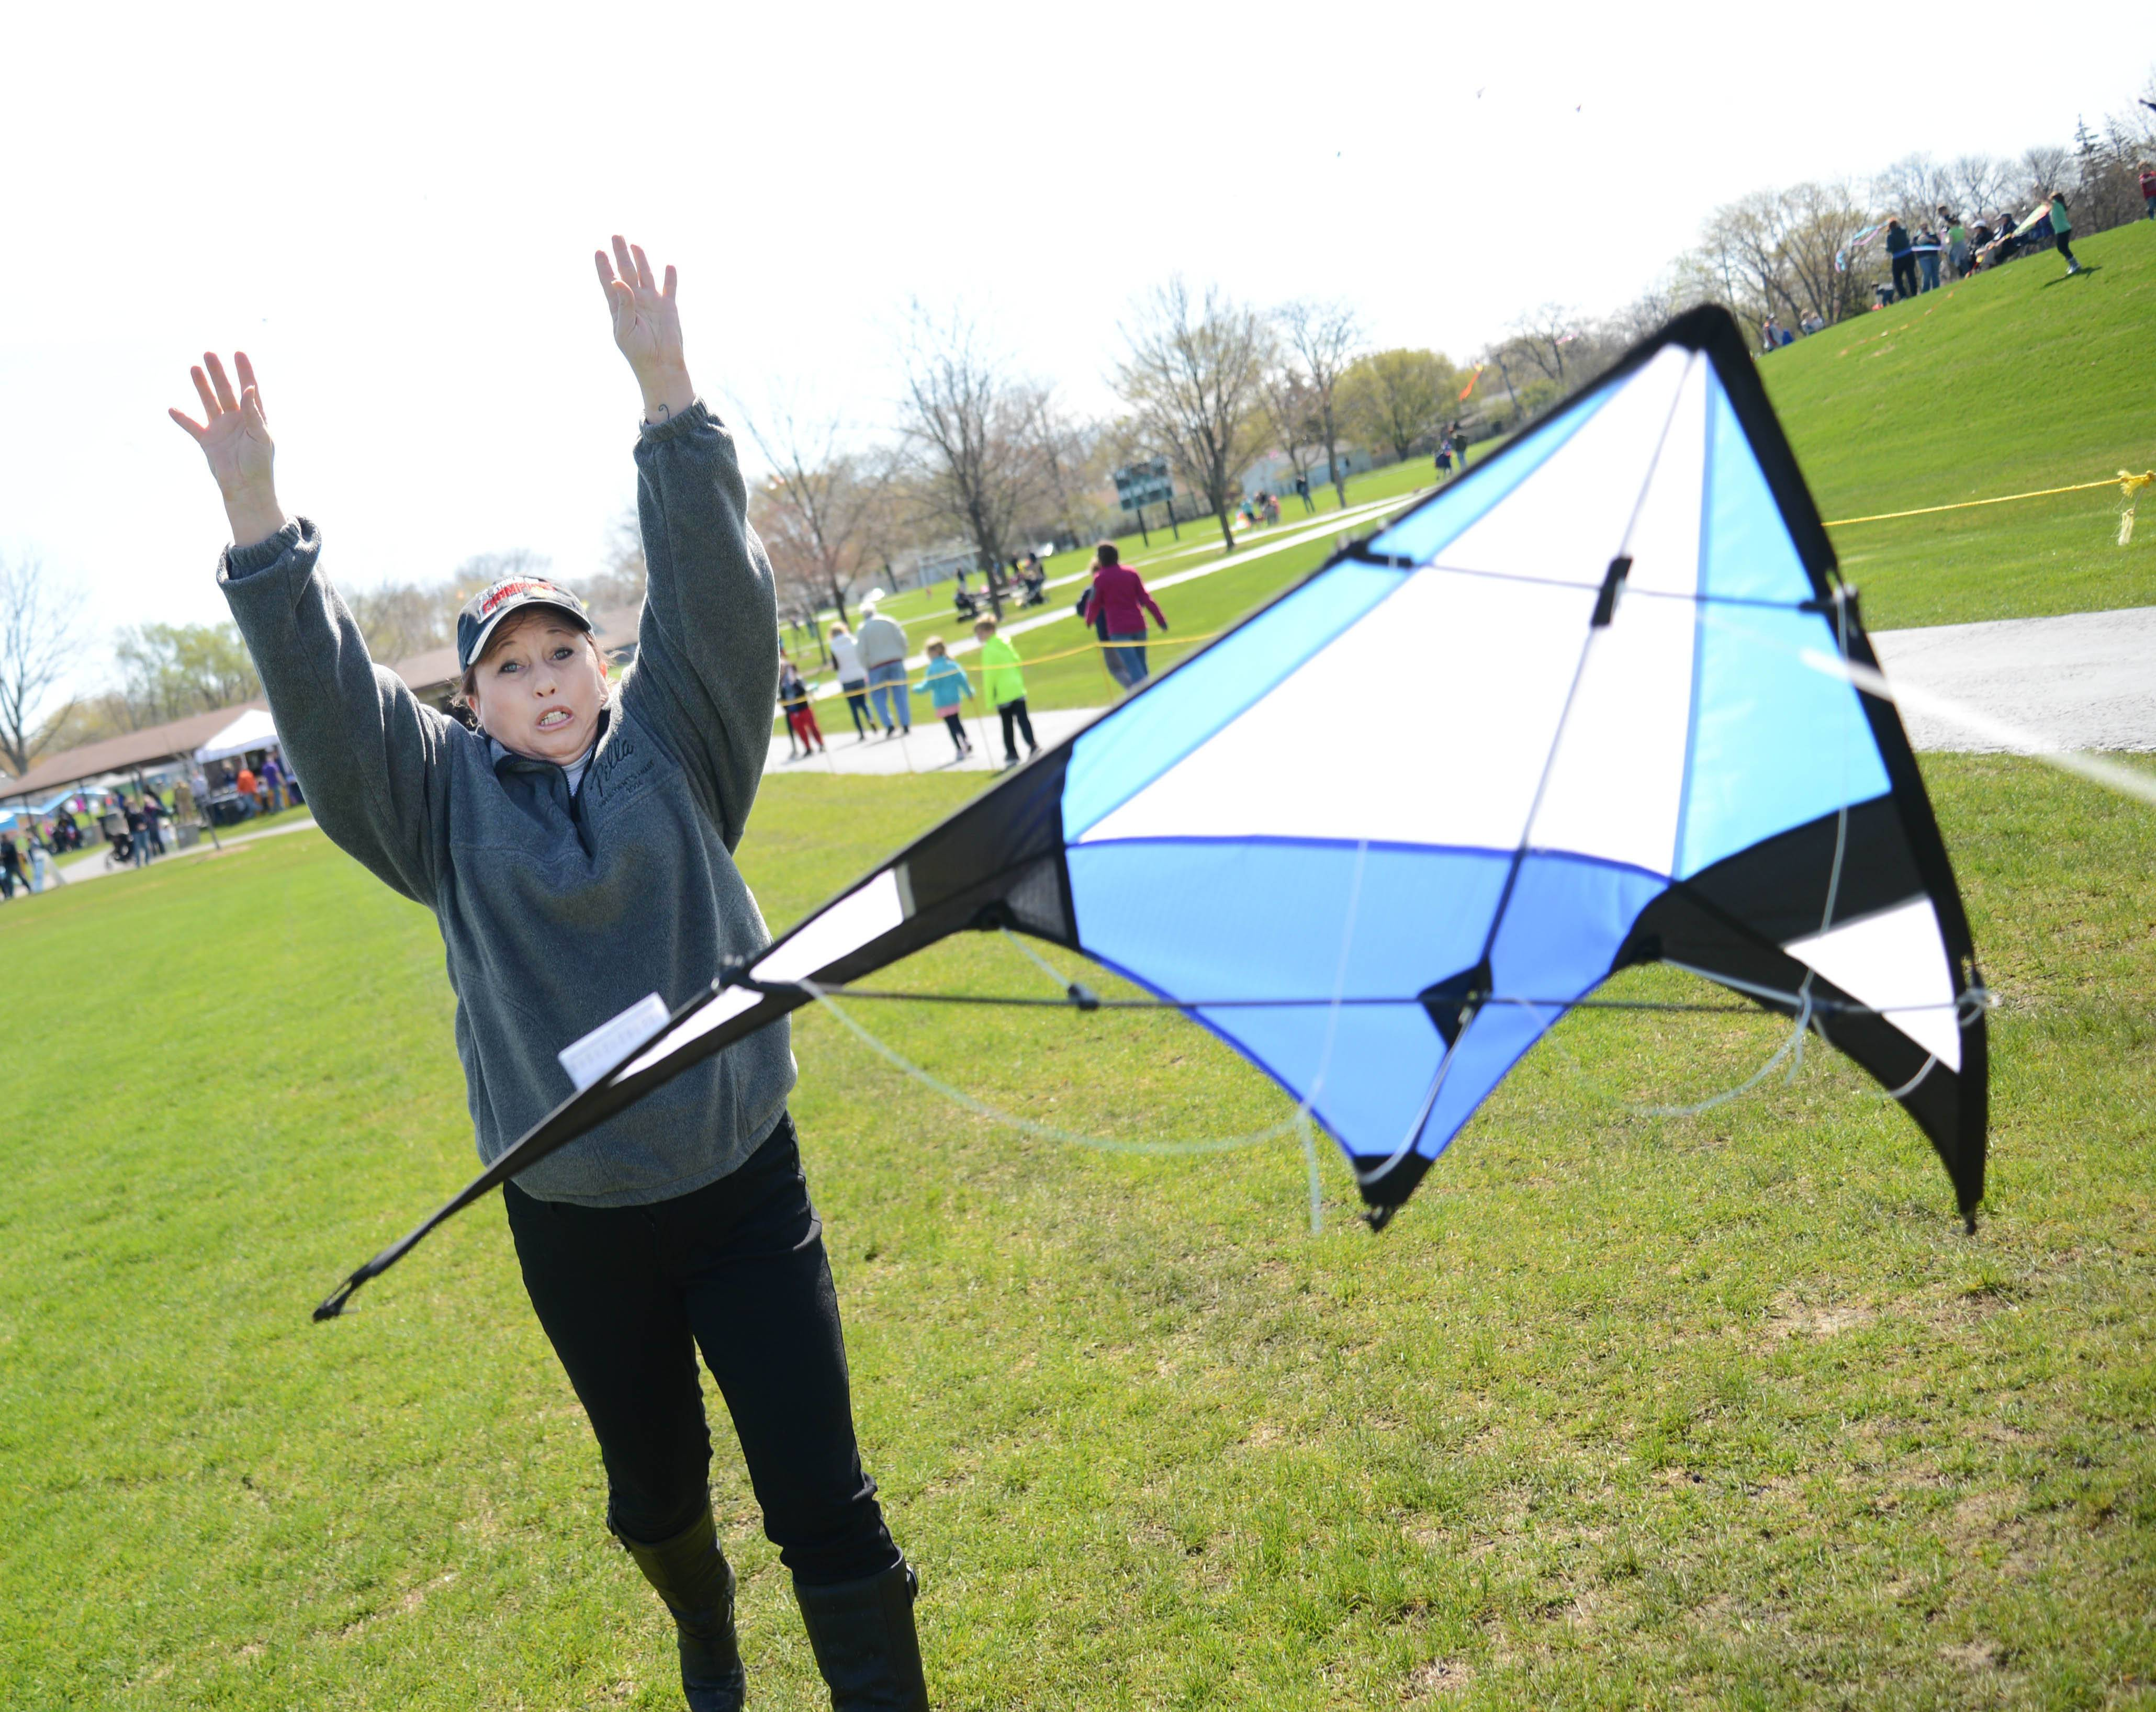 Christine Mirabella of Aurora released her kite during the sixth annual Go Fly A Kite! event at Graf Park Saturday in Wheaton.